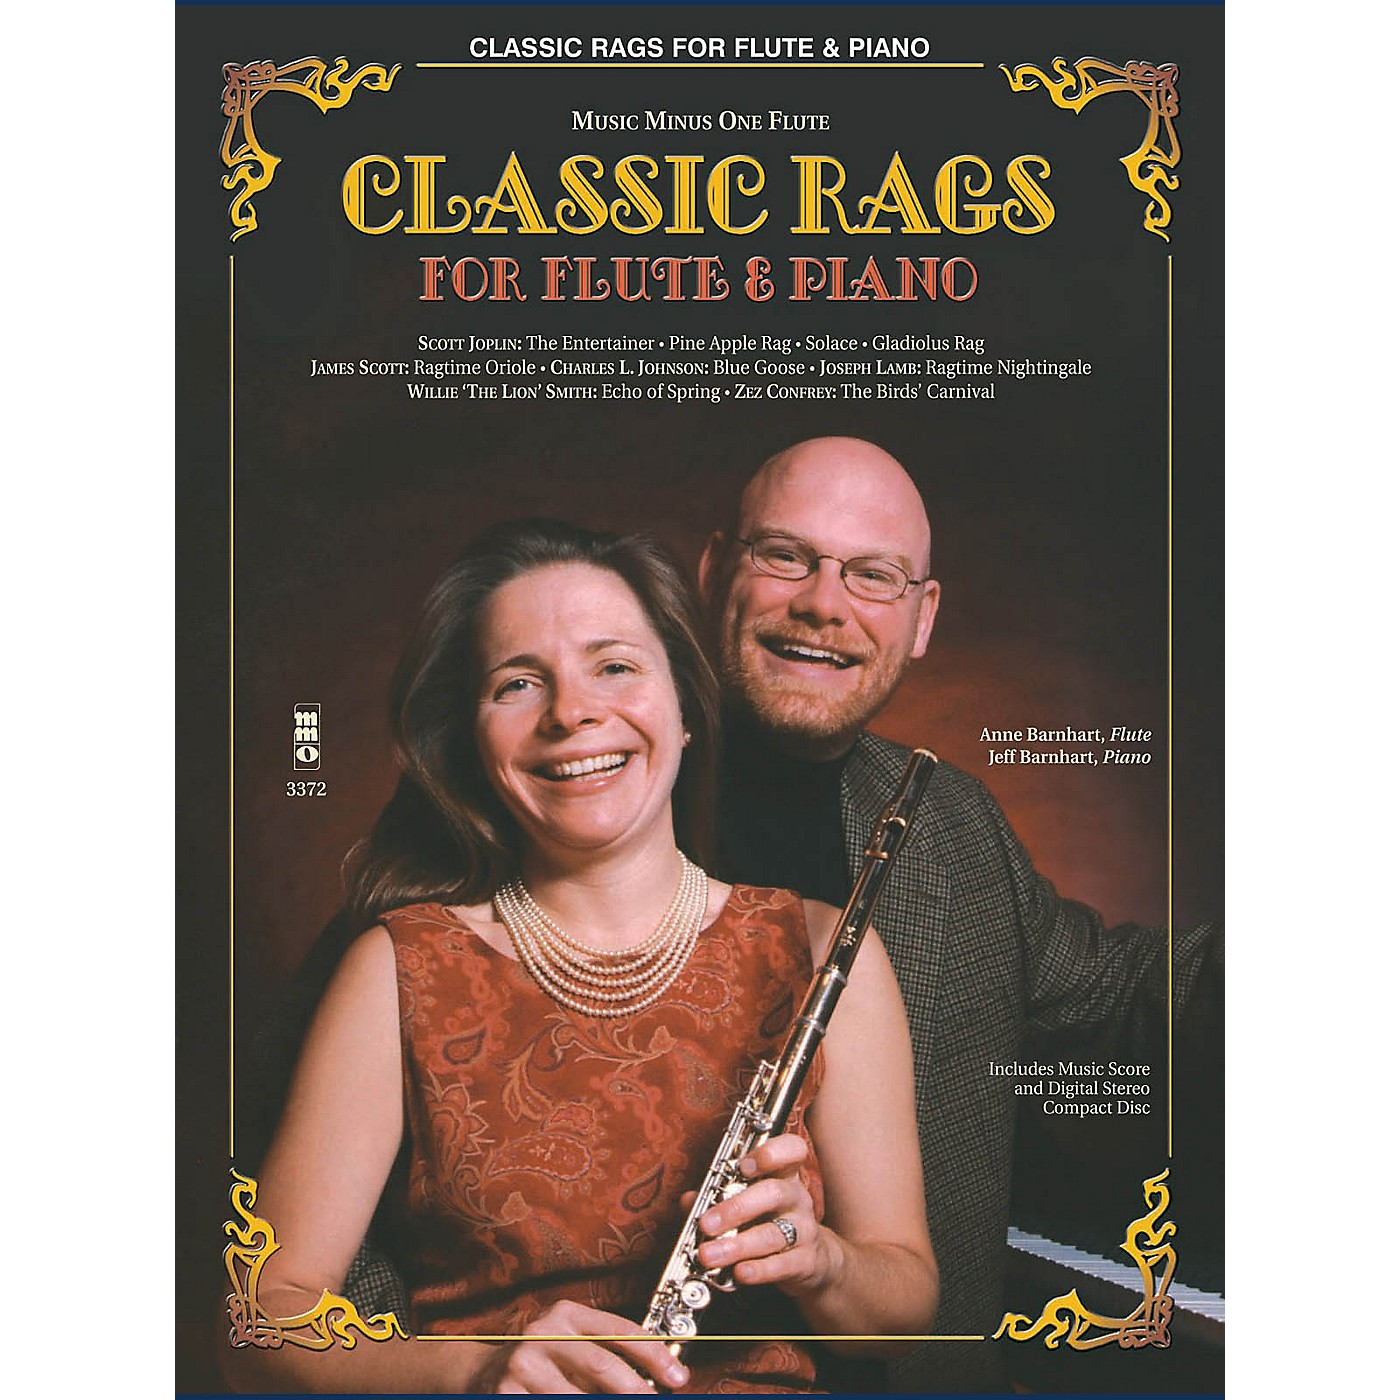 Music Minus One Classic Rags for Flute and Piano (Music Minus One Flute) Music Minus One Series Softcover with CD thumbnail